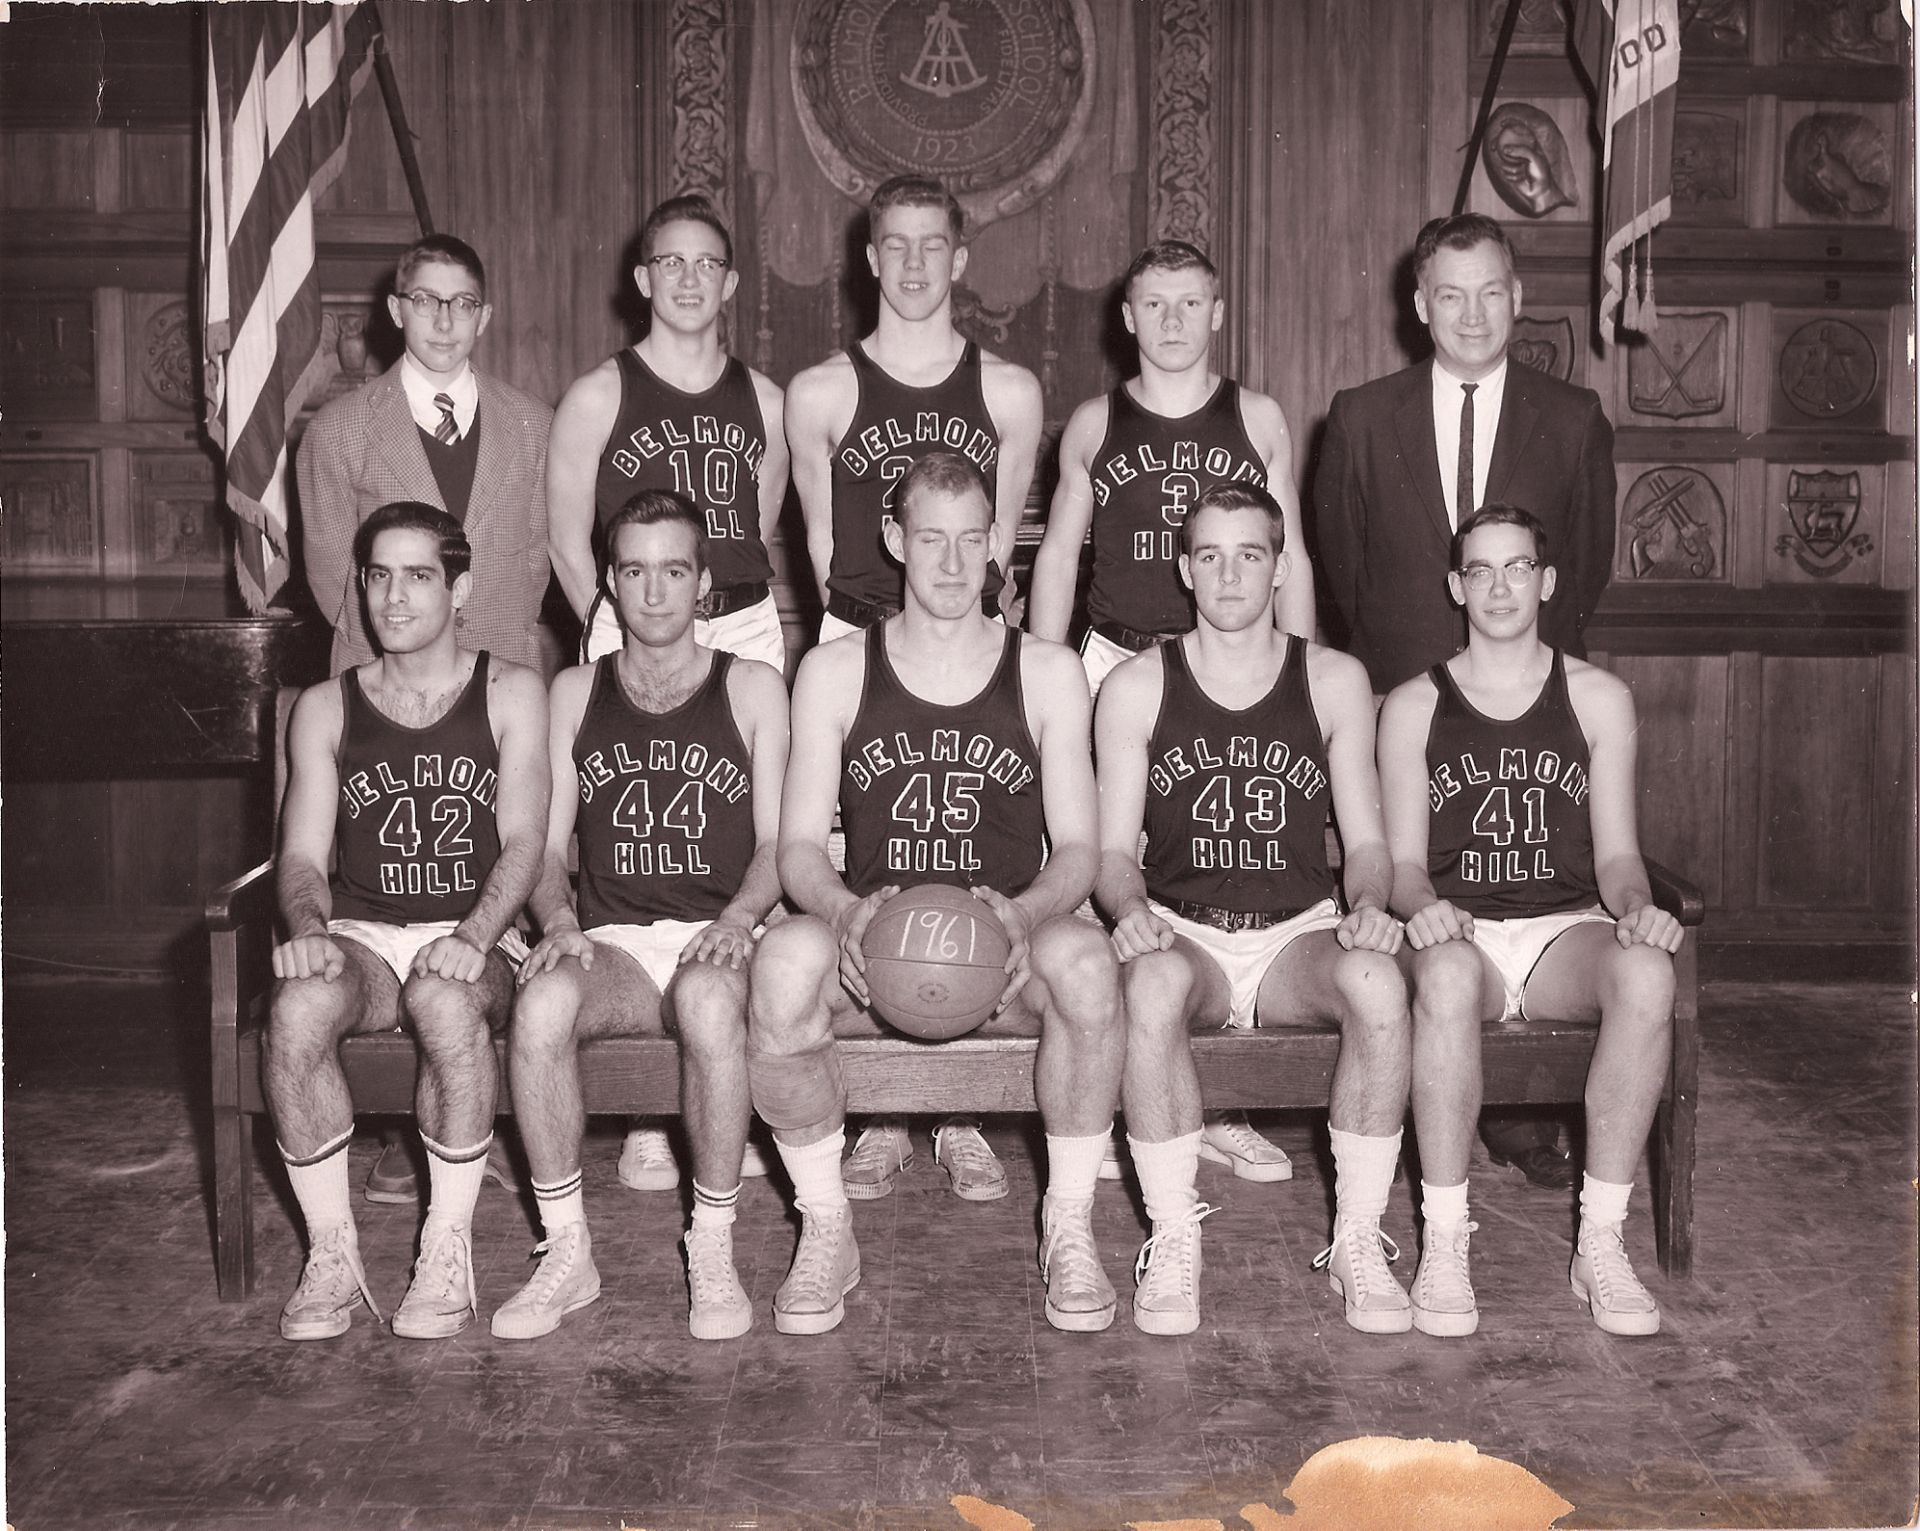 First Row: Annis, Carr, Captain Kimball, Woodbury, C. Amon Second Row: Manager Gilman, D. Amon, Mclean, W. Croke, Coach Croke